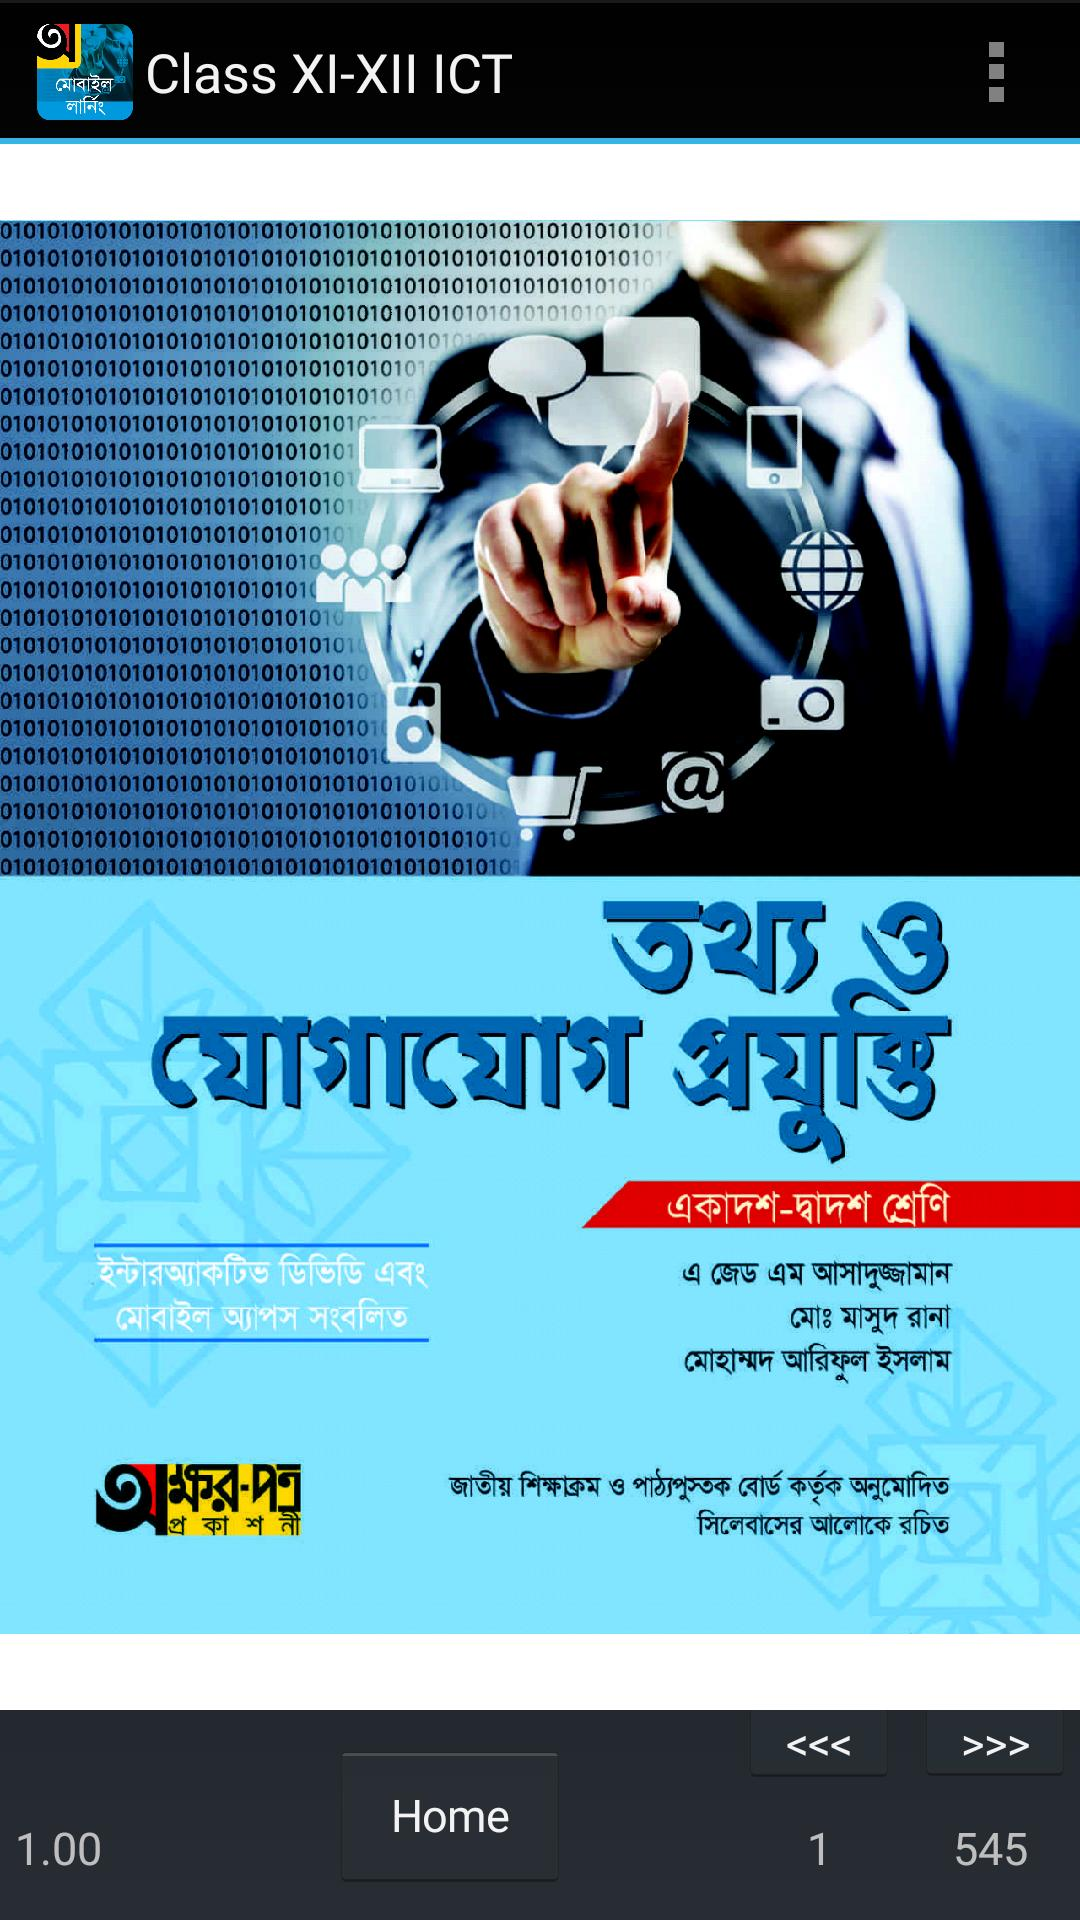 Class XI-XII ICT Book for Android - APK Download